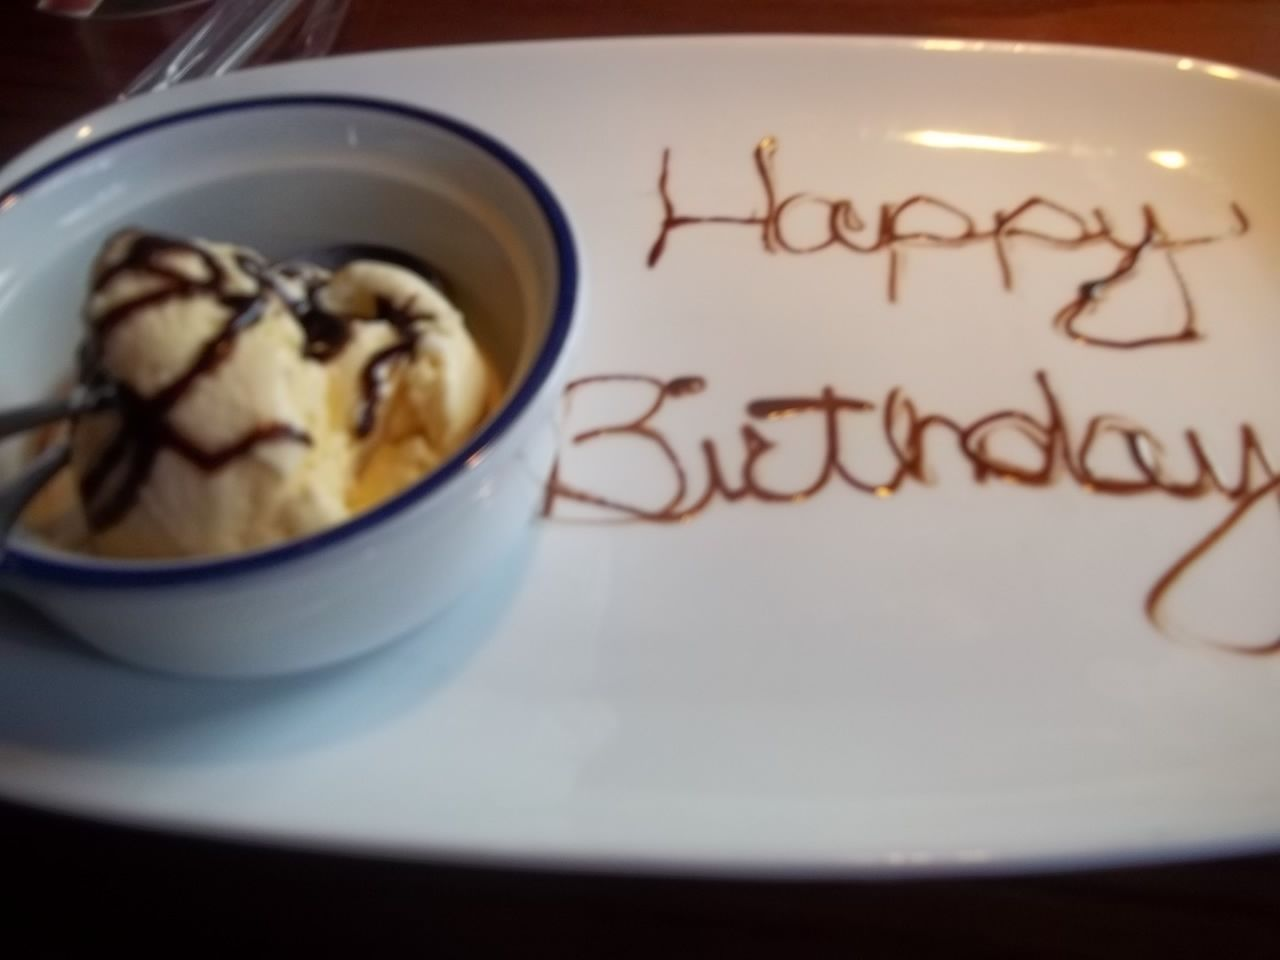 This was my free-ice cream sundae from Red Lobster for my birthday last year!